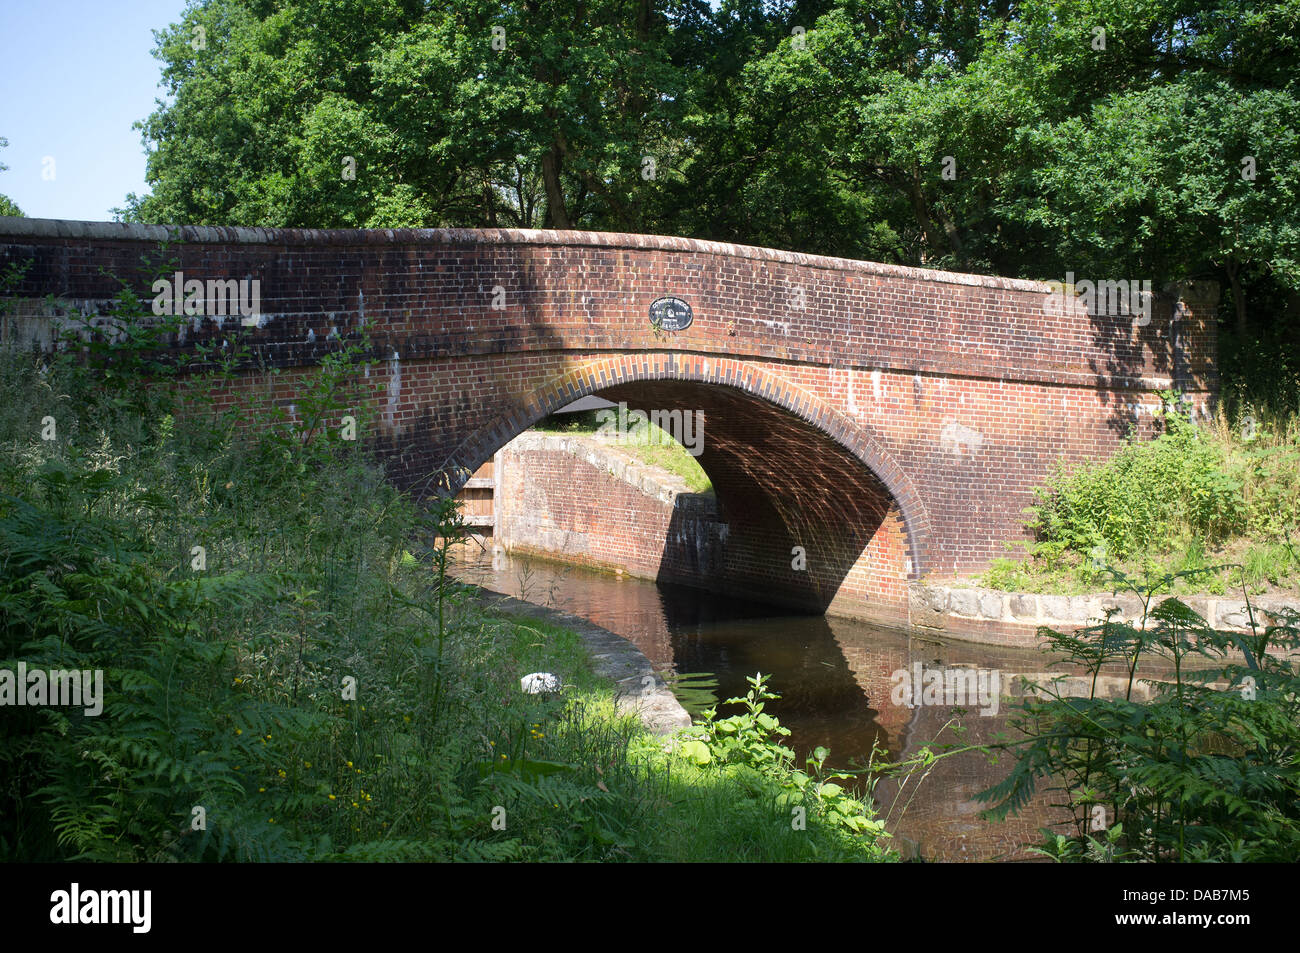 Cowshot Bridge over The Basingstoke Canal at Lock 17 - Stock Image